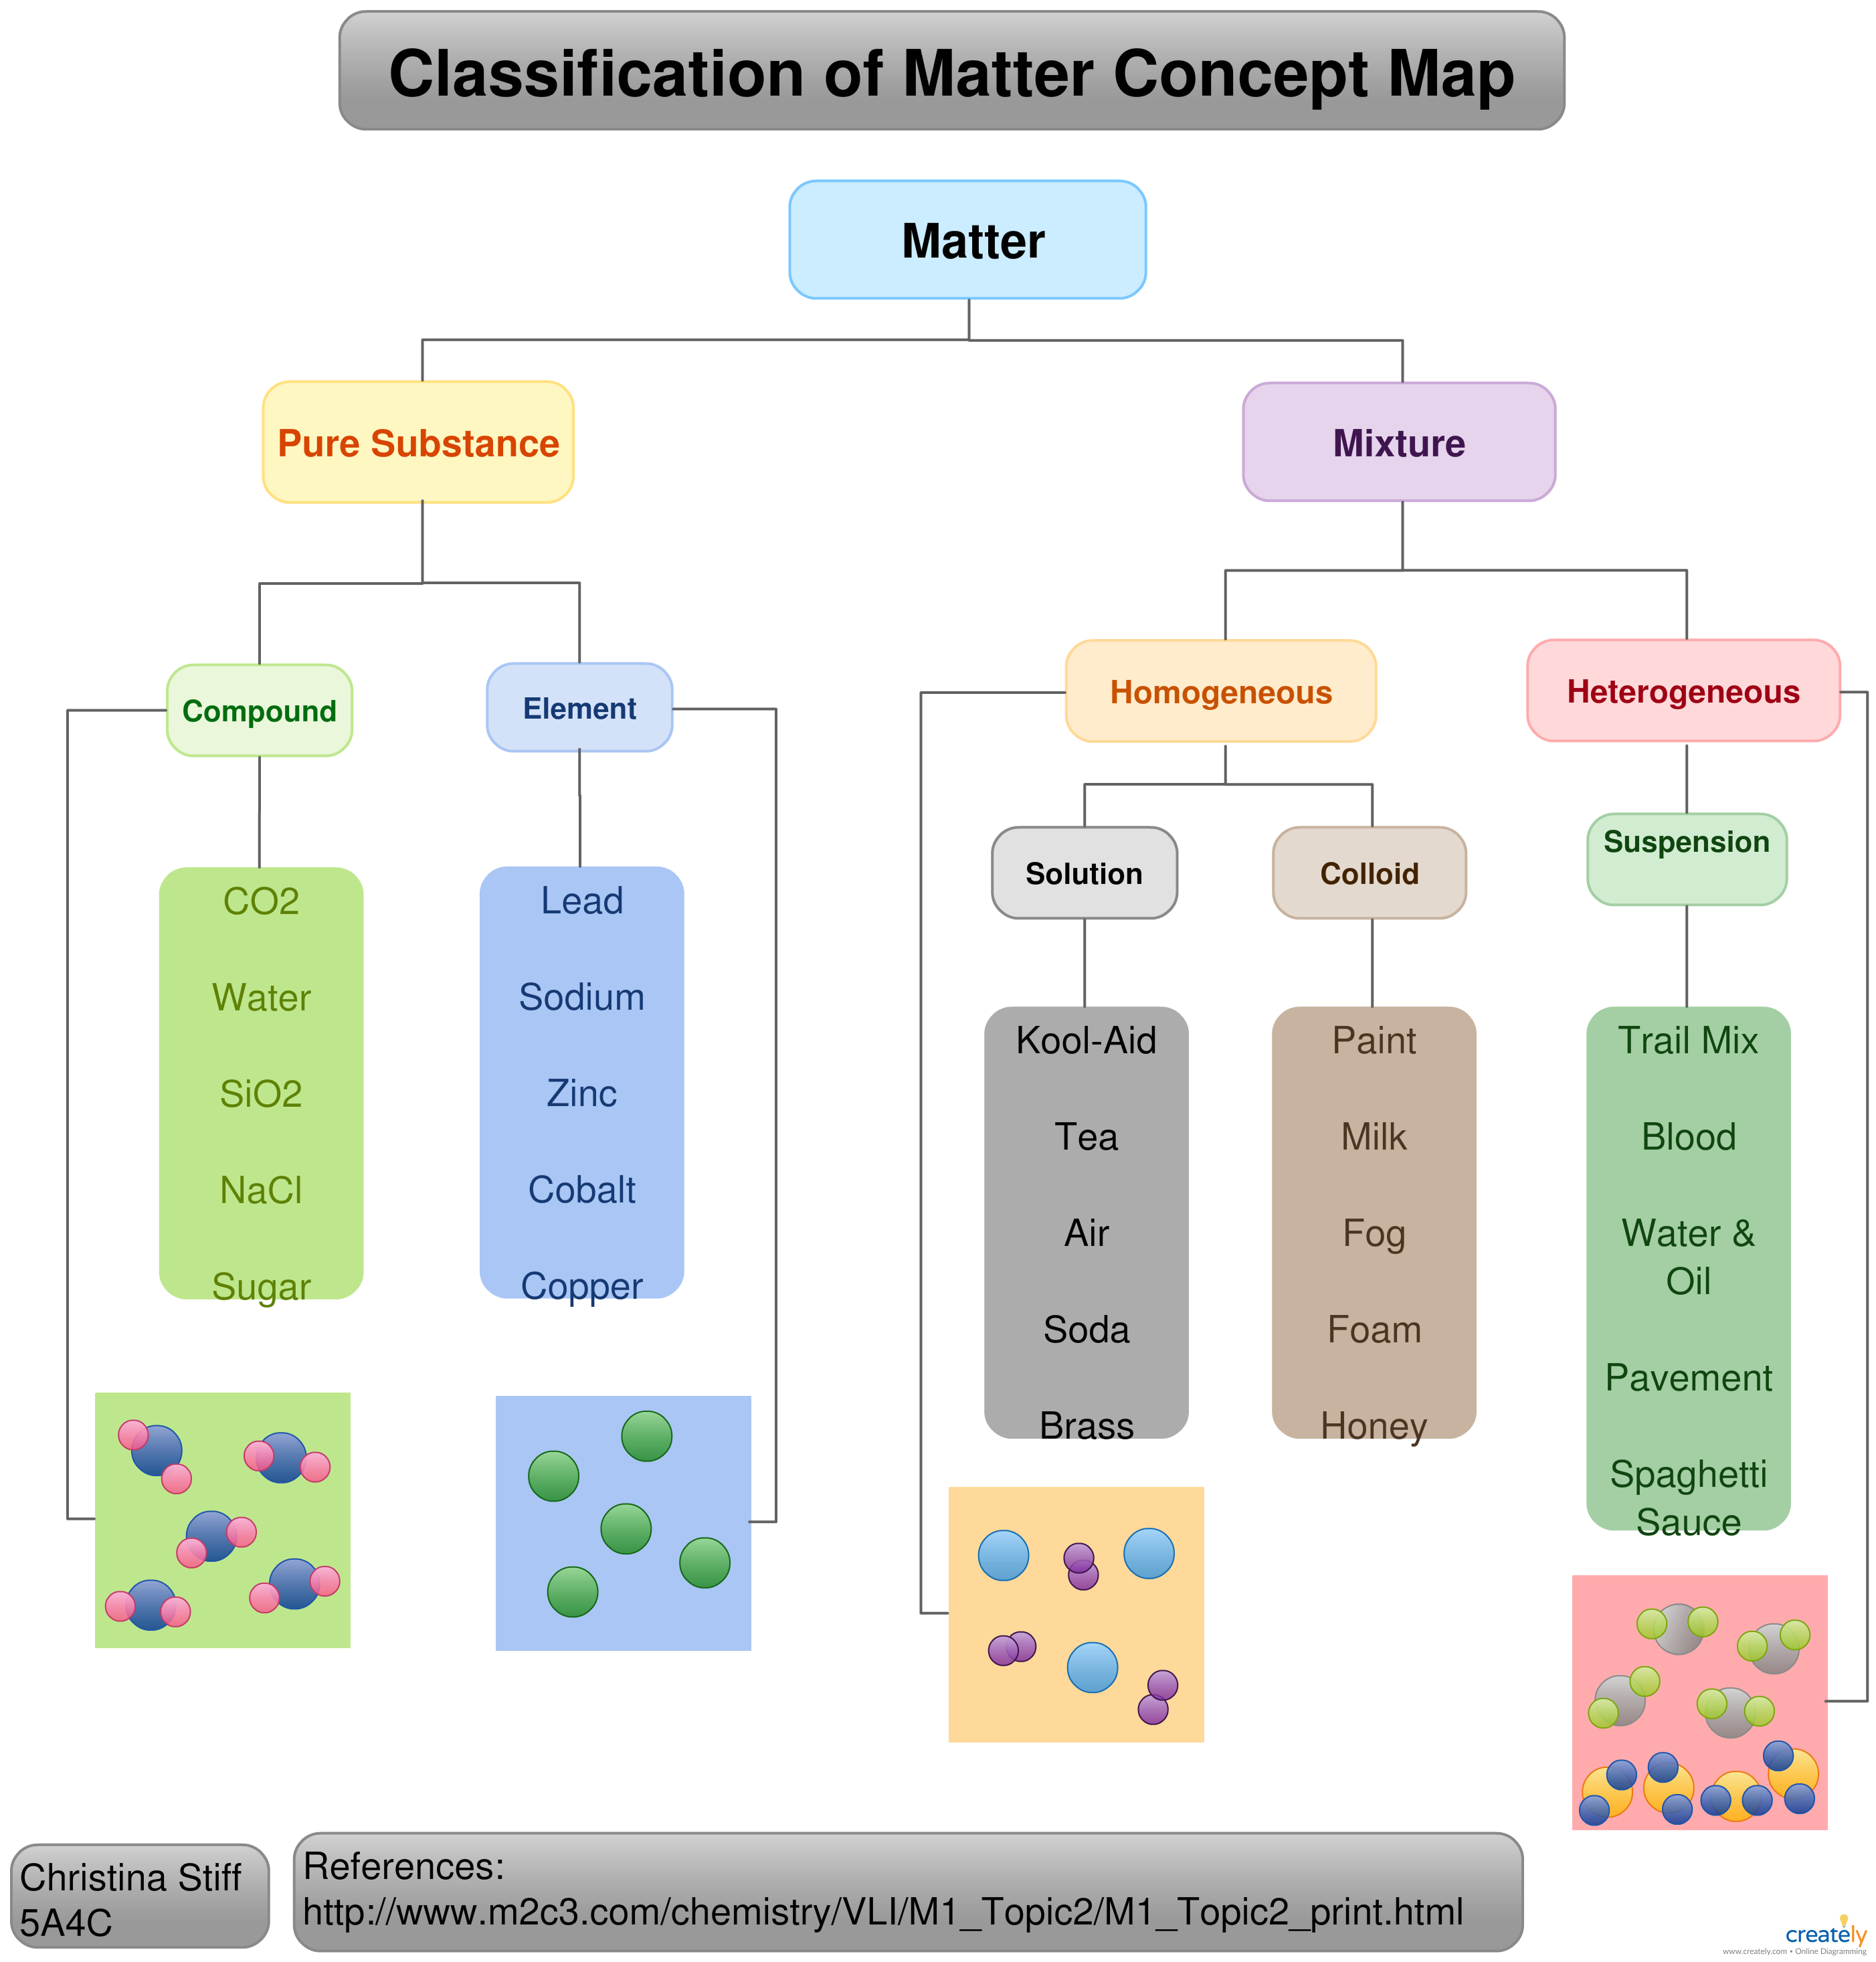 hight resolution of Classification of Matter Concept Map   Concept map